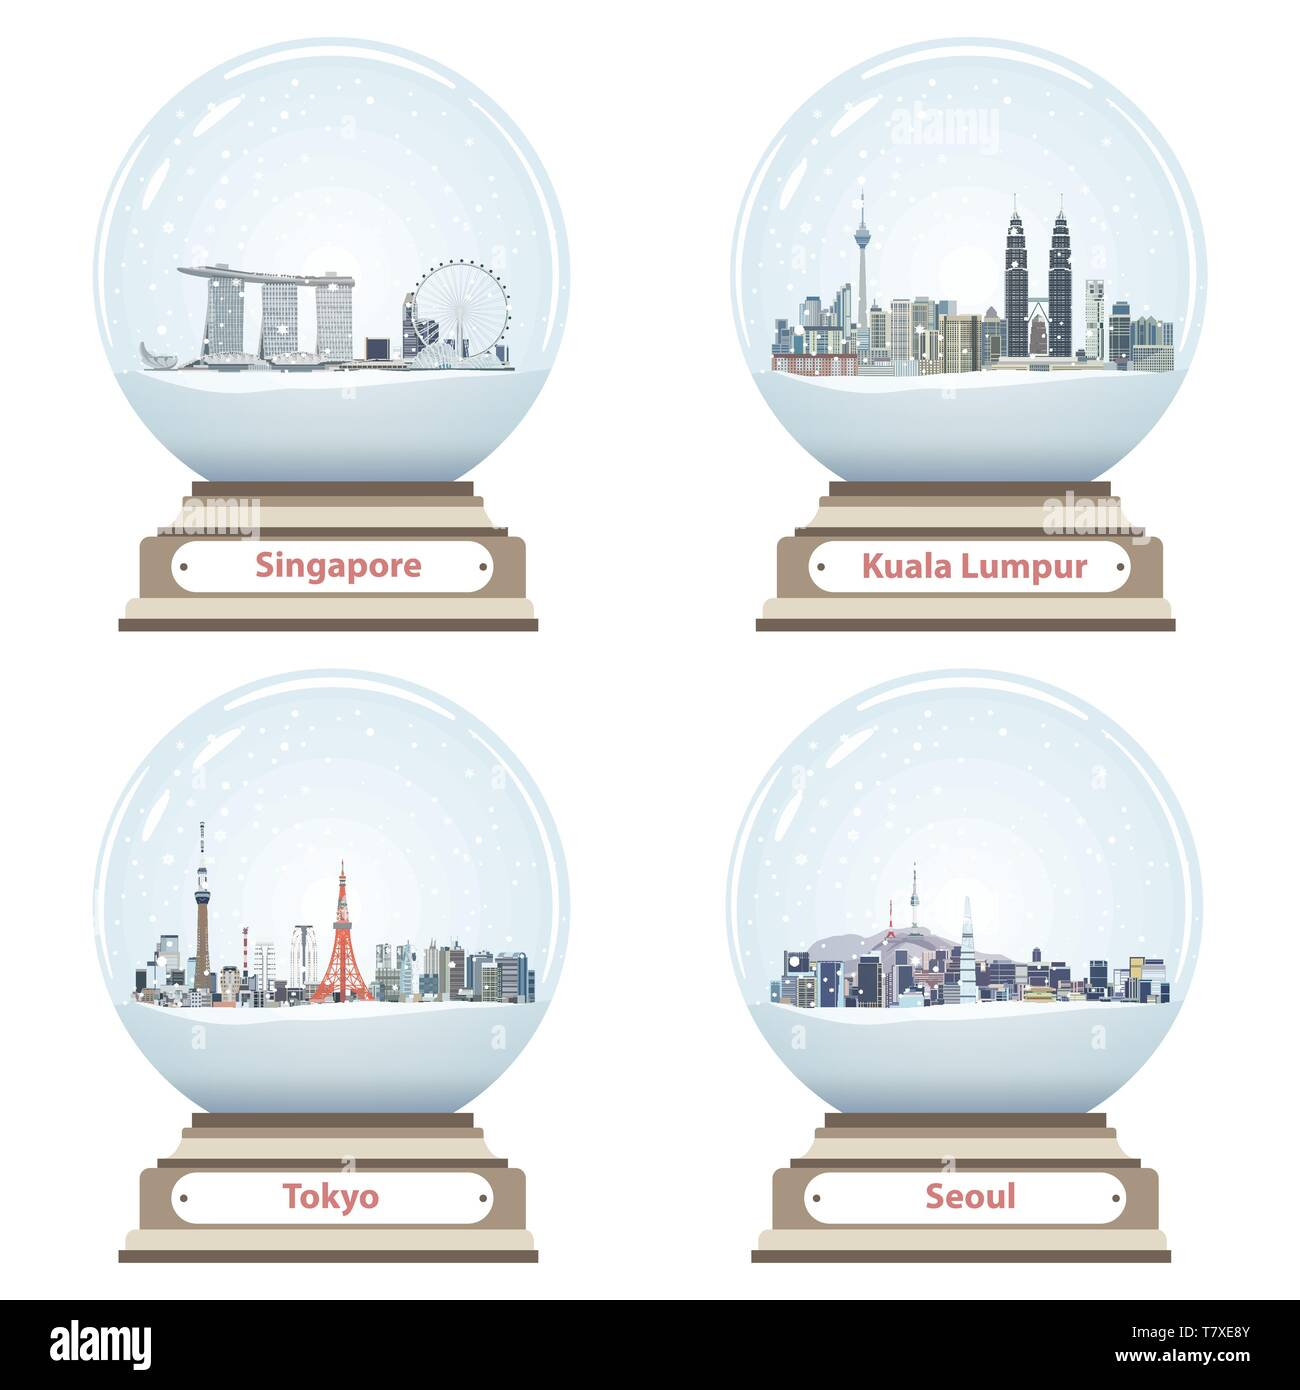 collection of snow globes with Singapore, Kuala Lumpur, Tokyo and Seoul city skylines - Stock Image